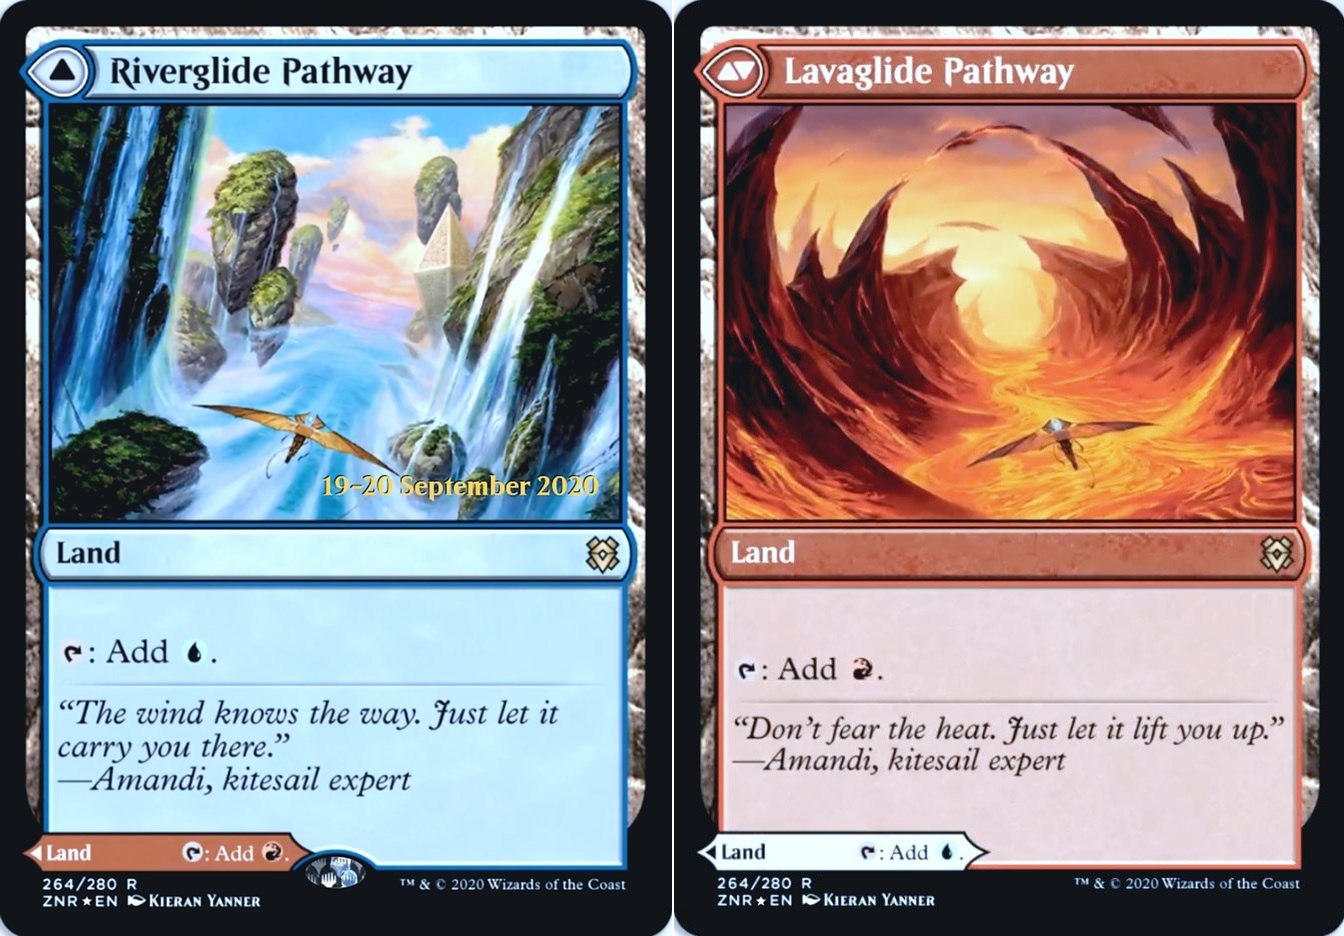 Riverglide Pathway // Lavaglide Pathway - Foil - Prerelease Promo